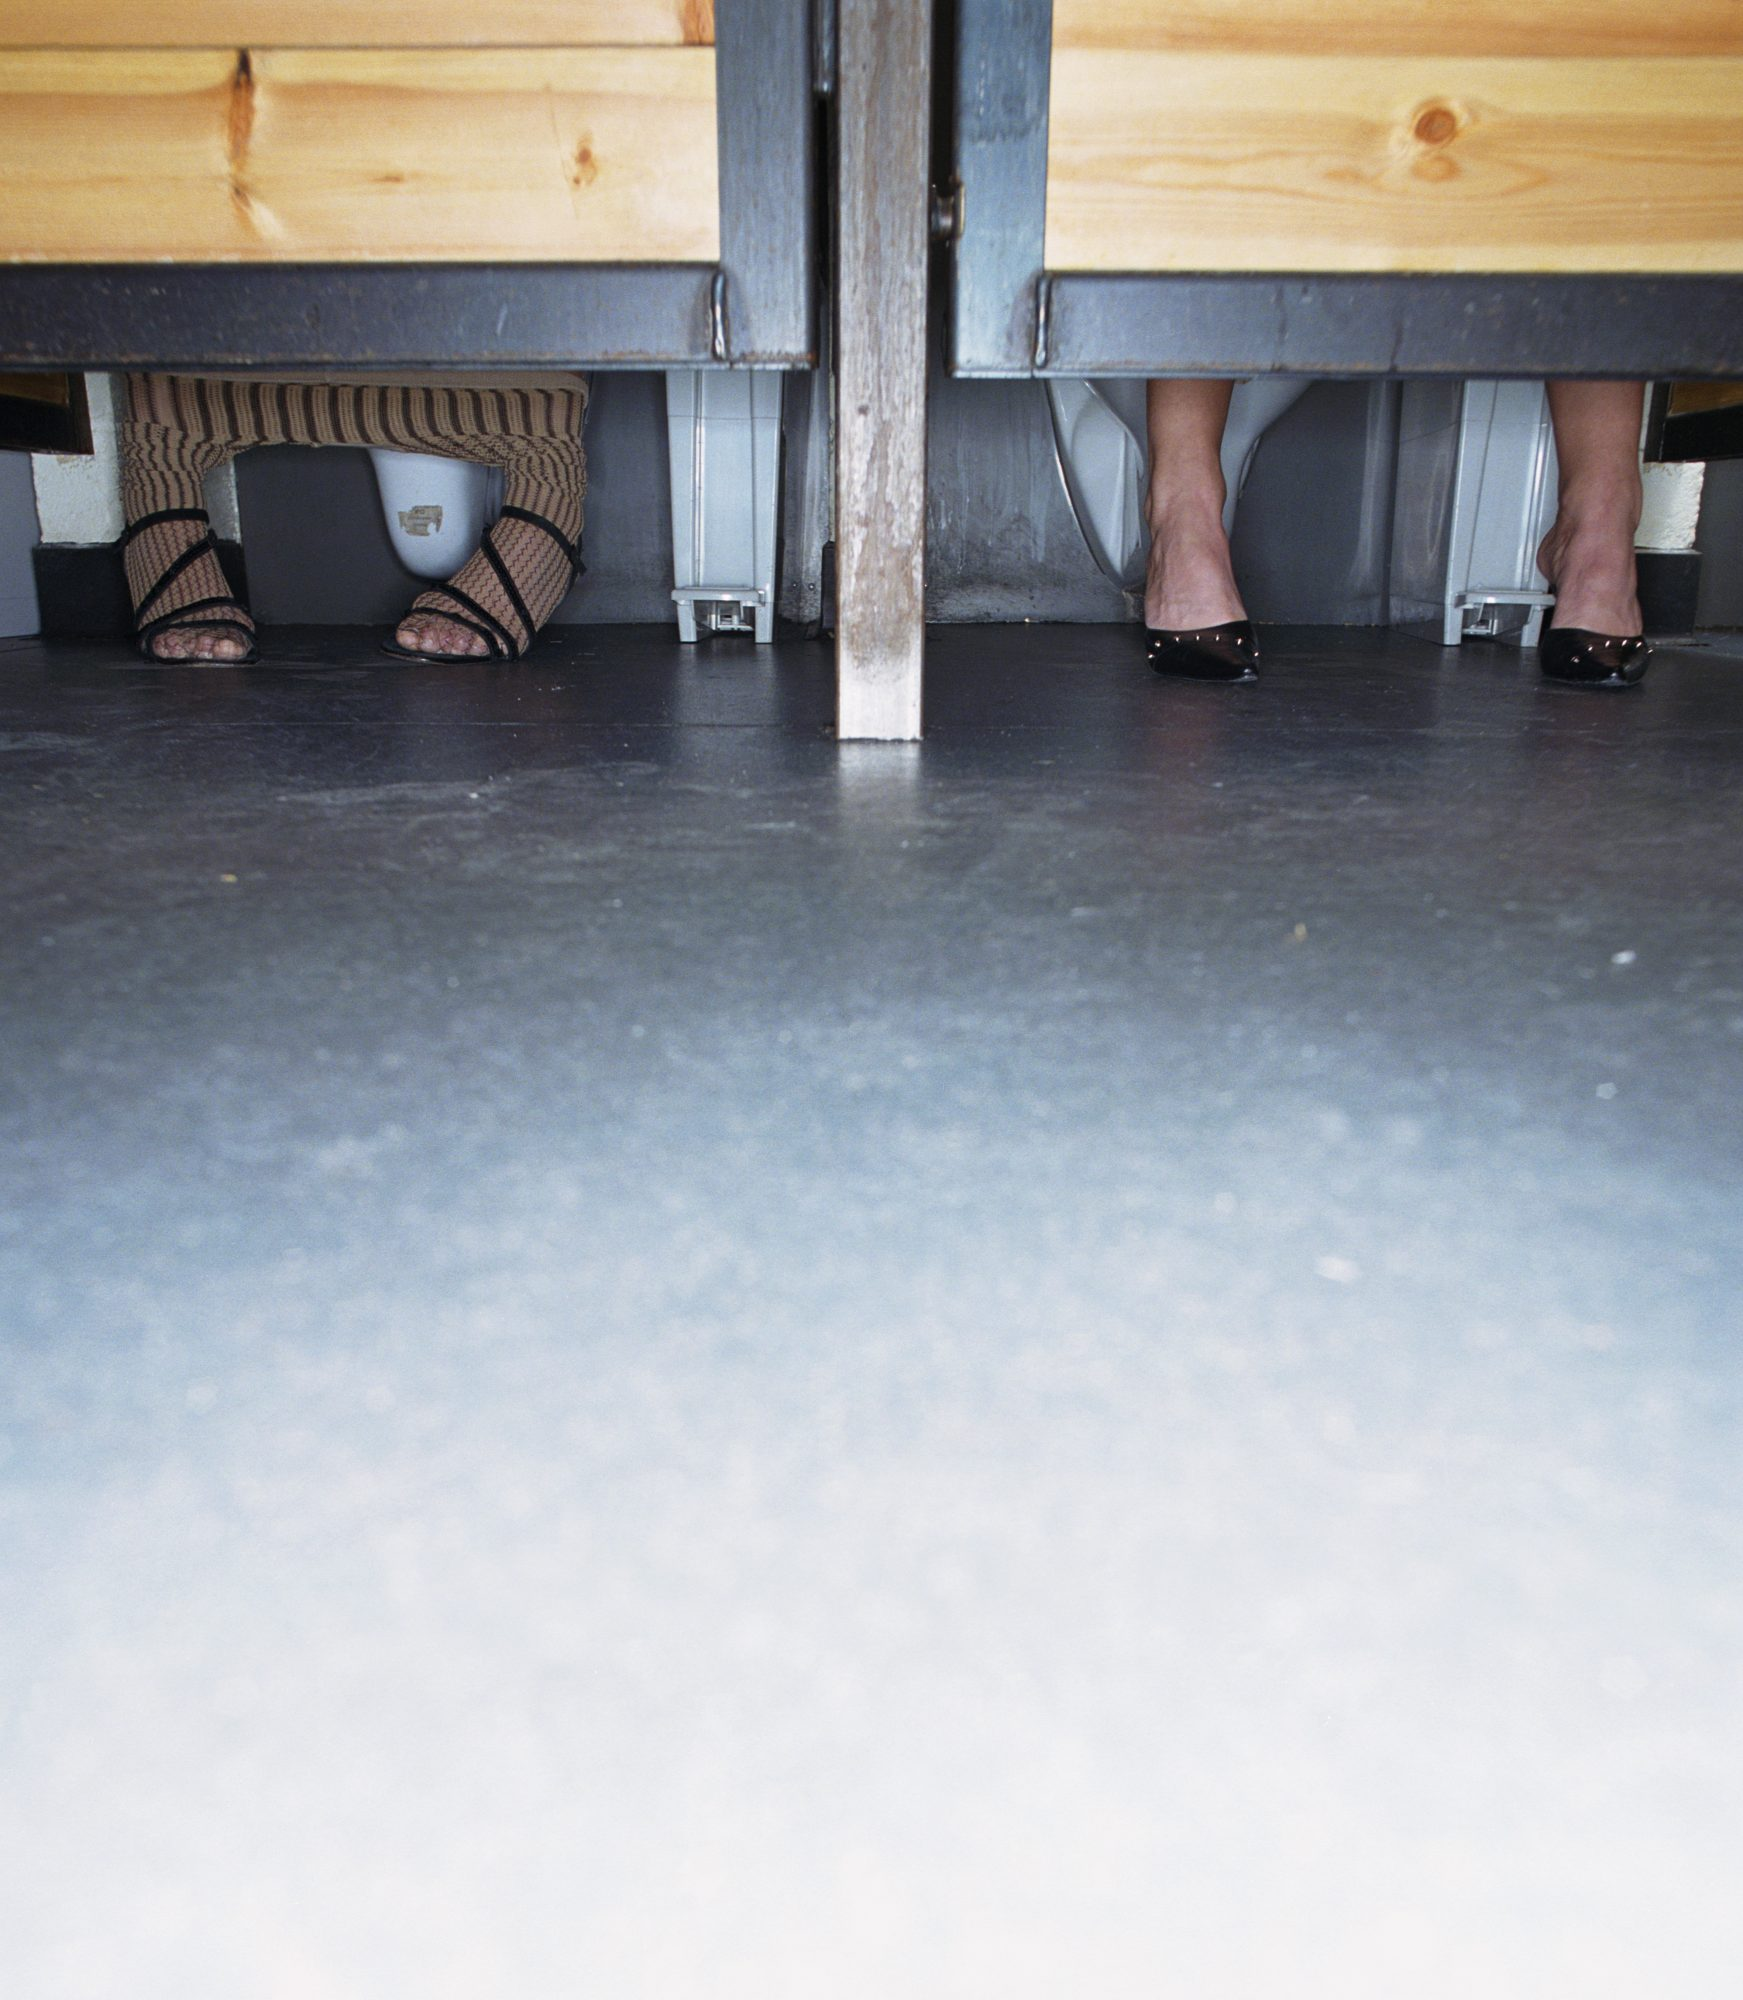 You Could Have This Anxiety Disorder If You Can't Pee in Public